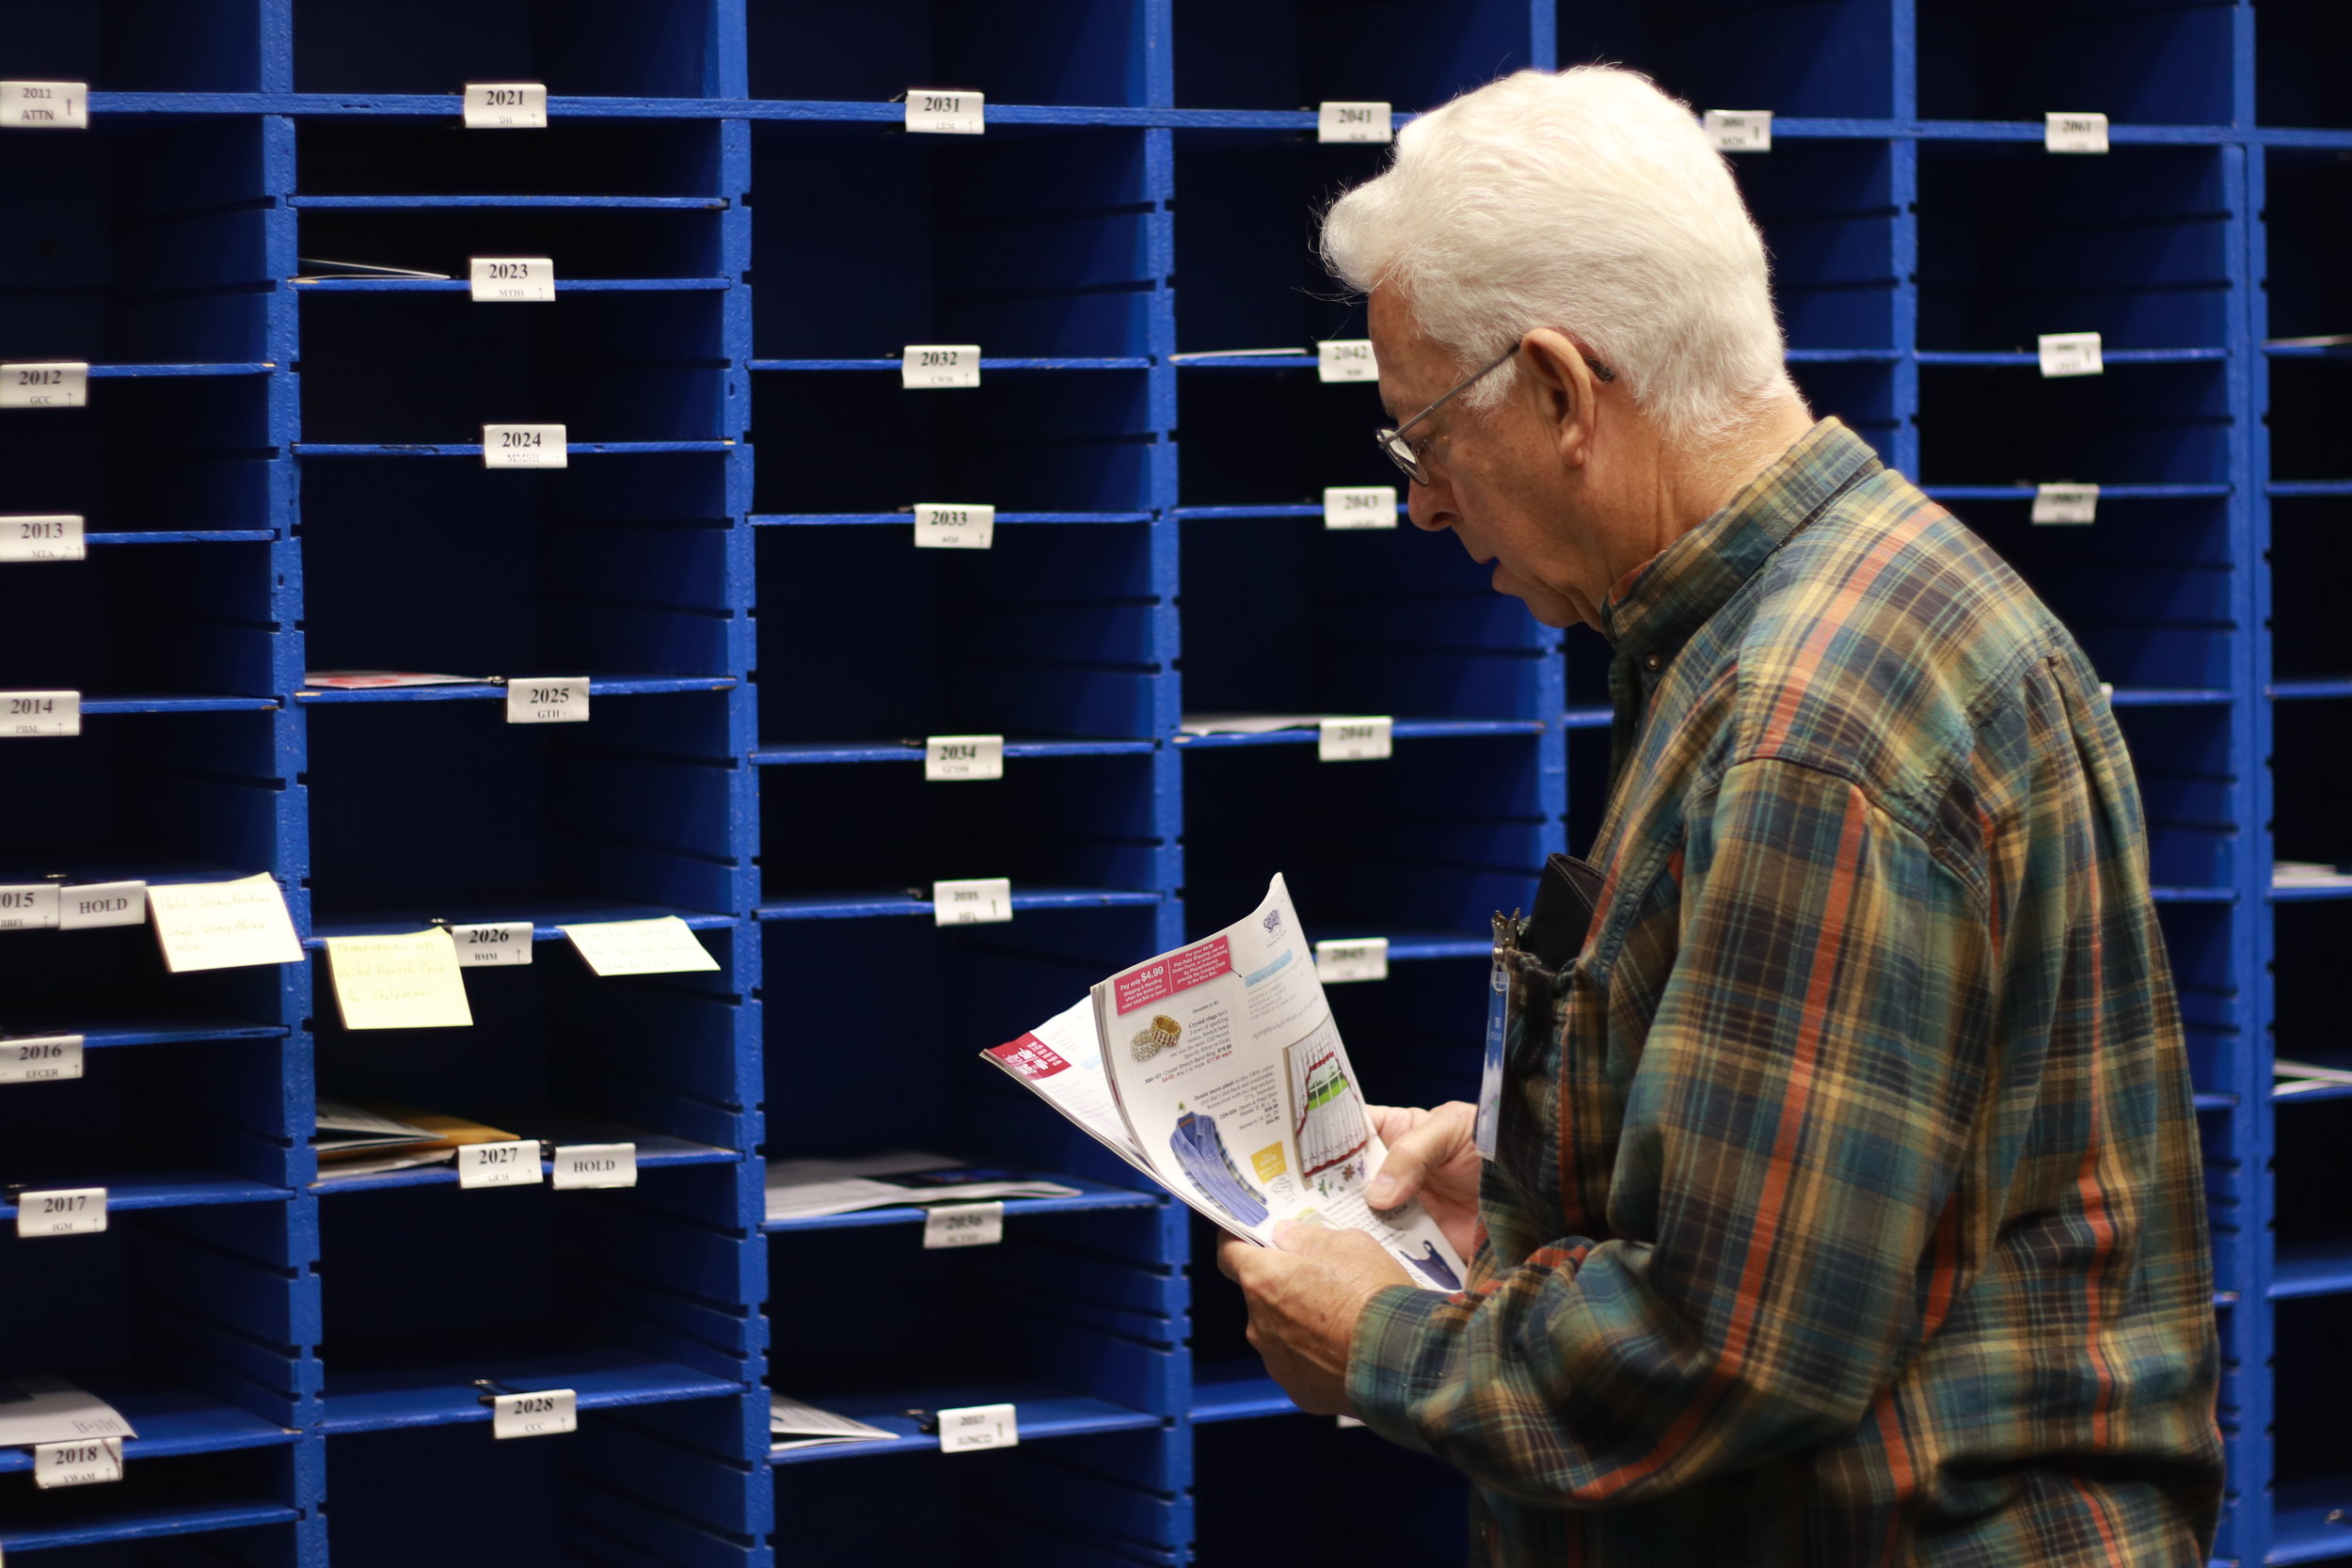 Ted is fondly remembered to hum the tunes of various hymns while sorting mail in the MFI mailroom.